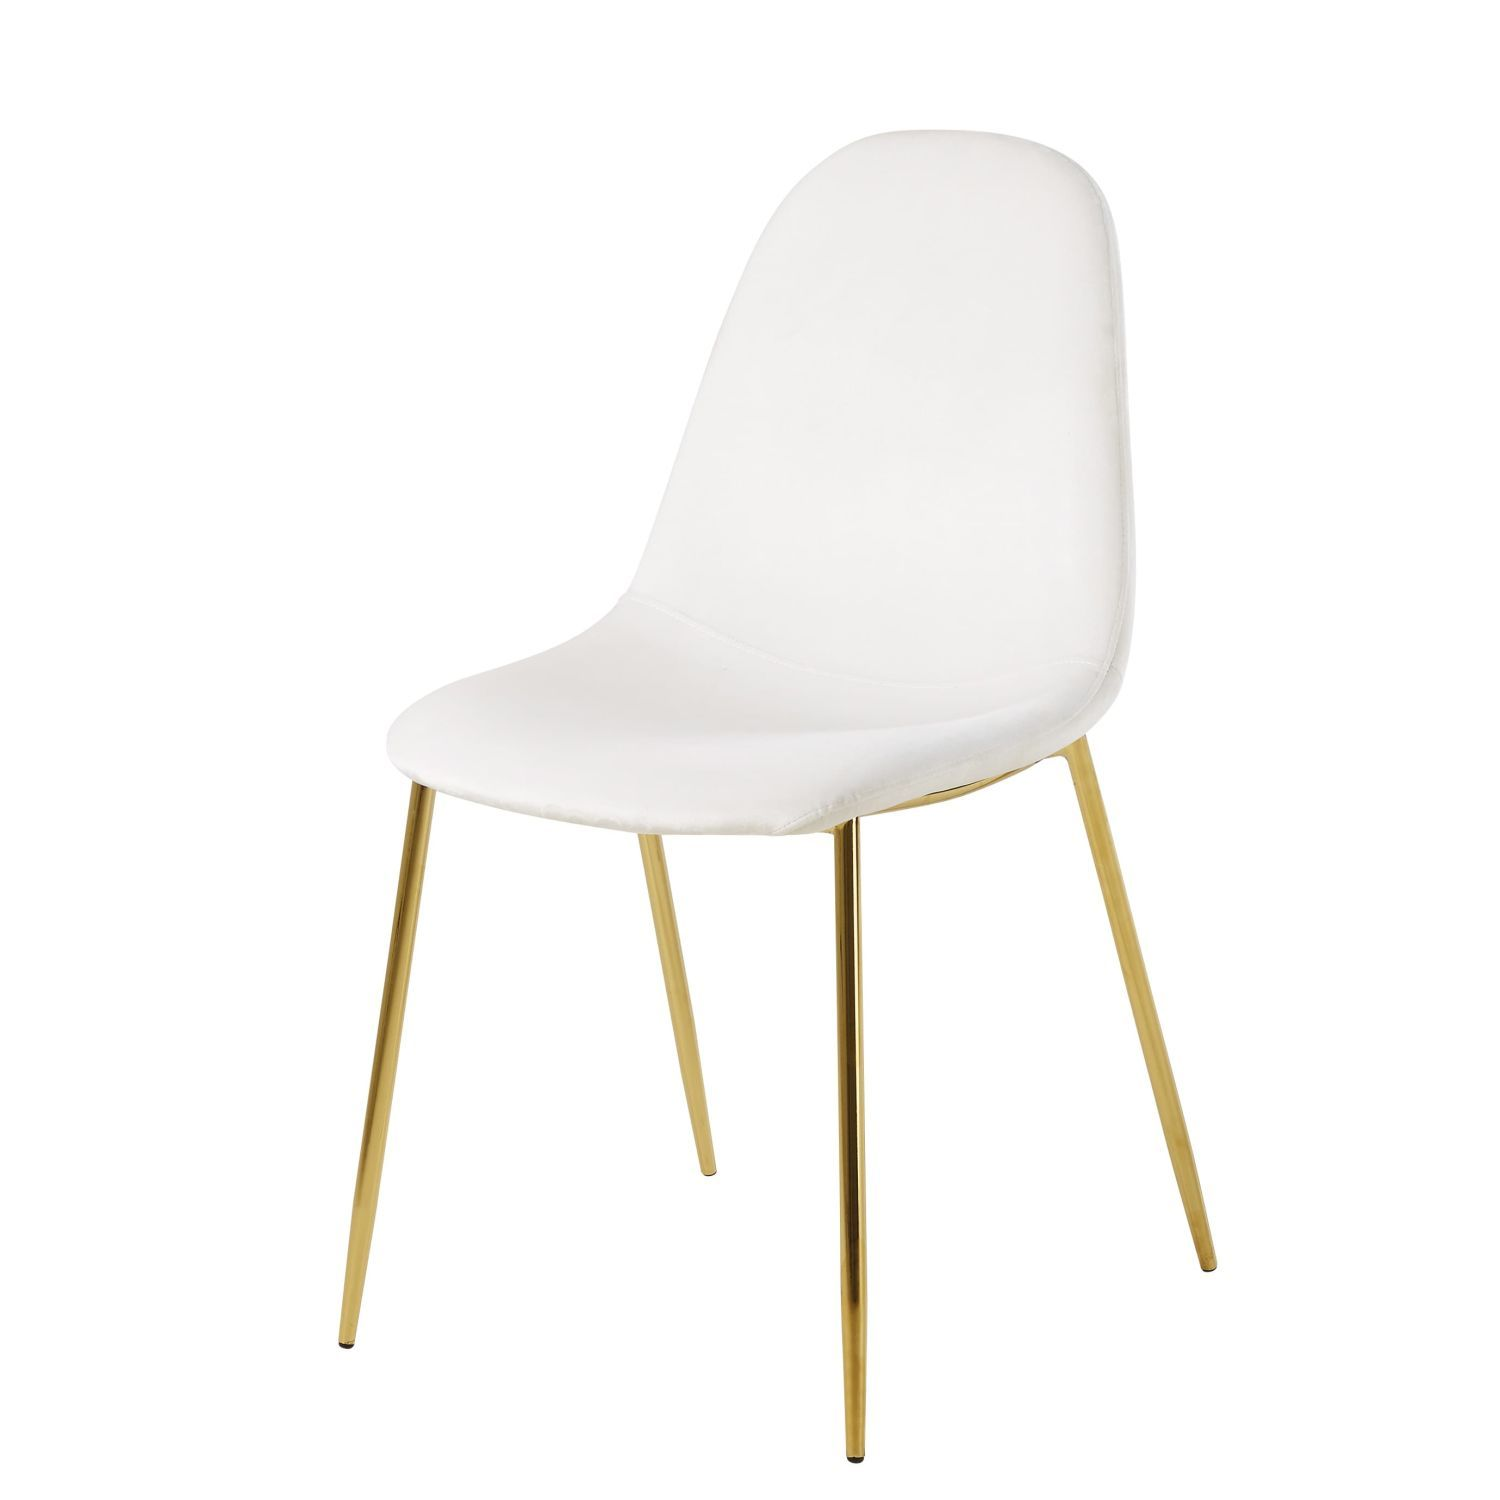 The Clyde White Velvet And Gold Metal Scandinavian Chair Is The Perfect Piece To Add Comfort And Elegance To Your Int Skandinavische Stuhle Stuhle Weisse Stuhle